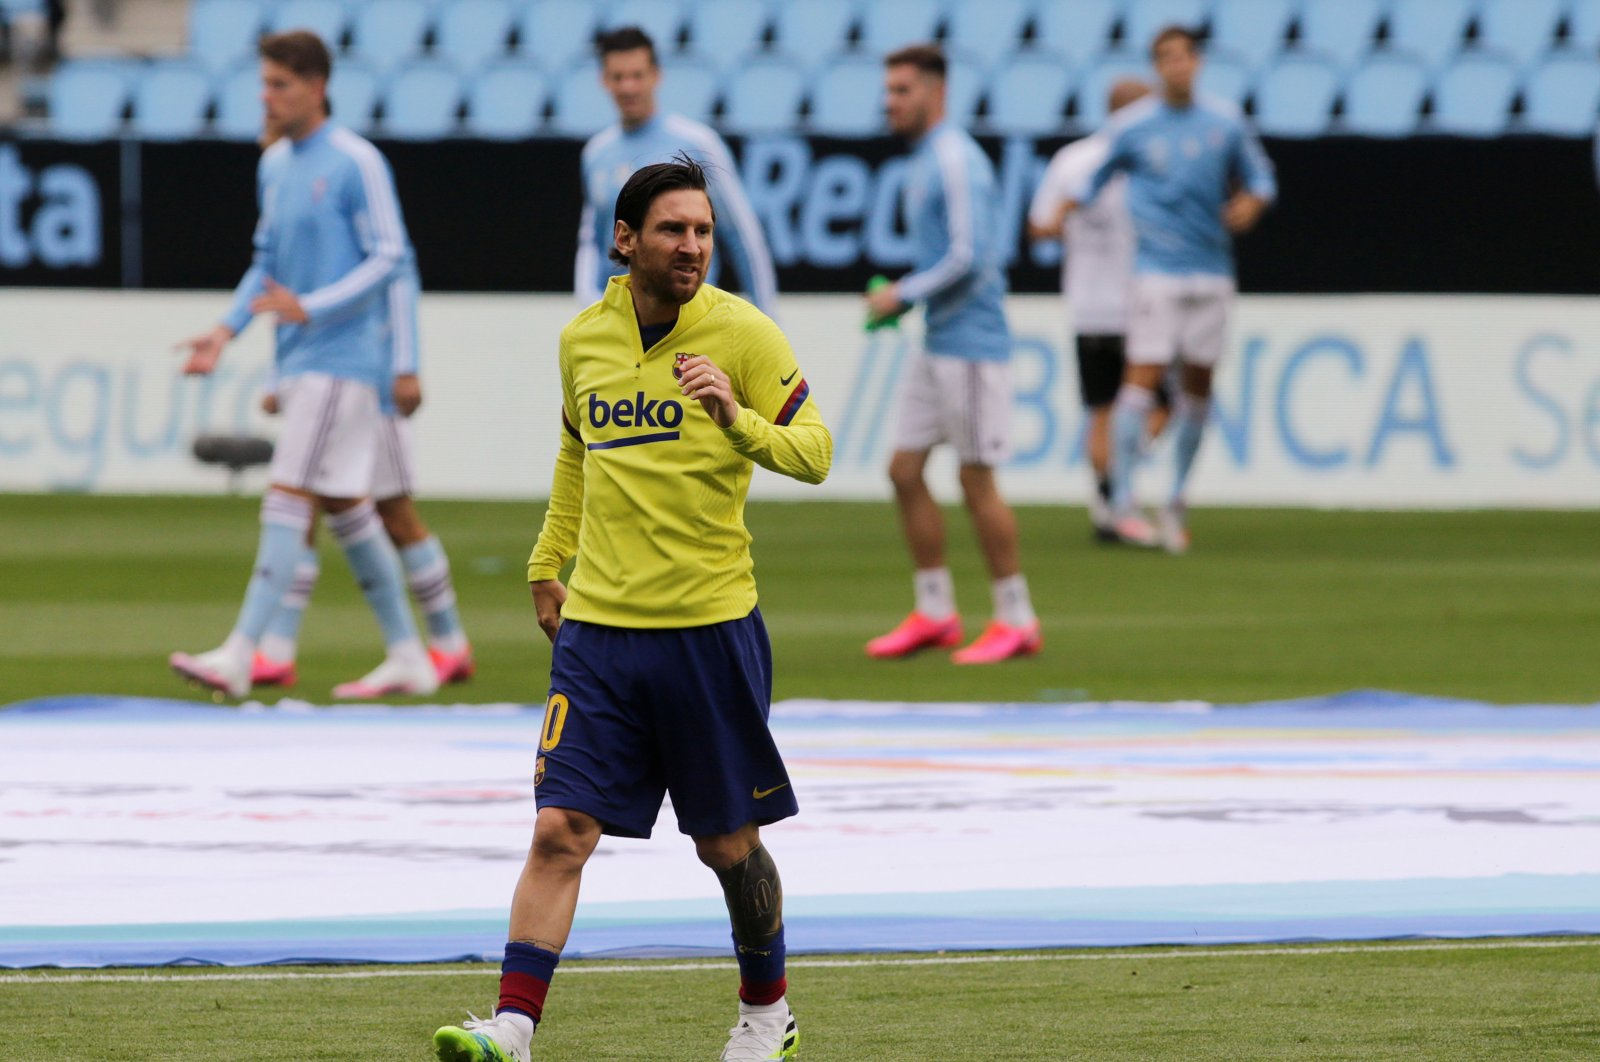 Barcelona's Lionel Messi during the warm-up before the match with Celta Vigo on June 27, 2020. (Reuters Photo)